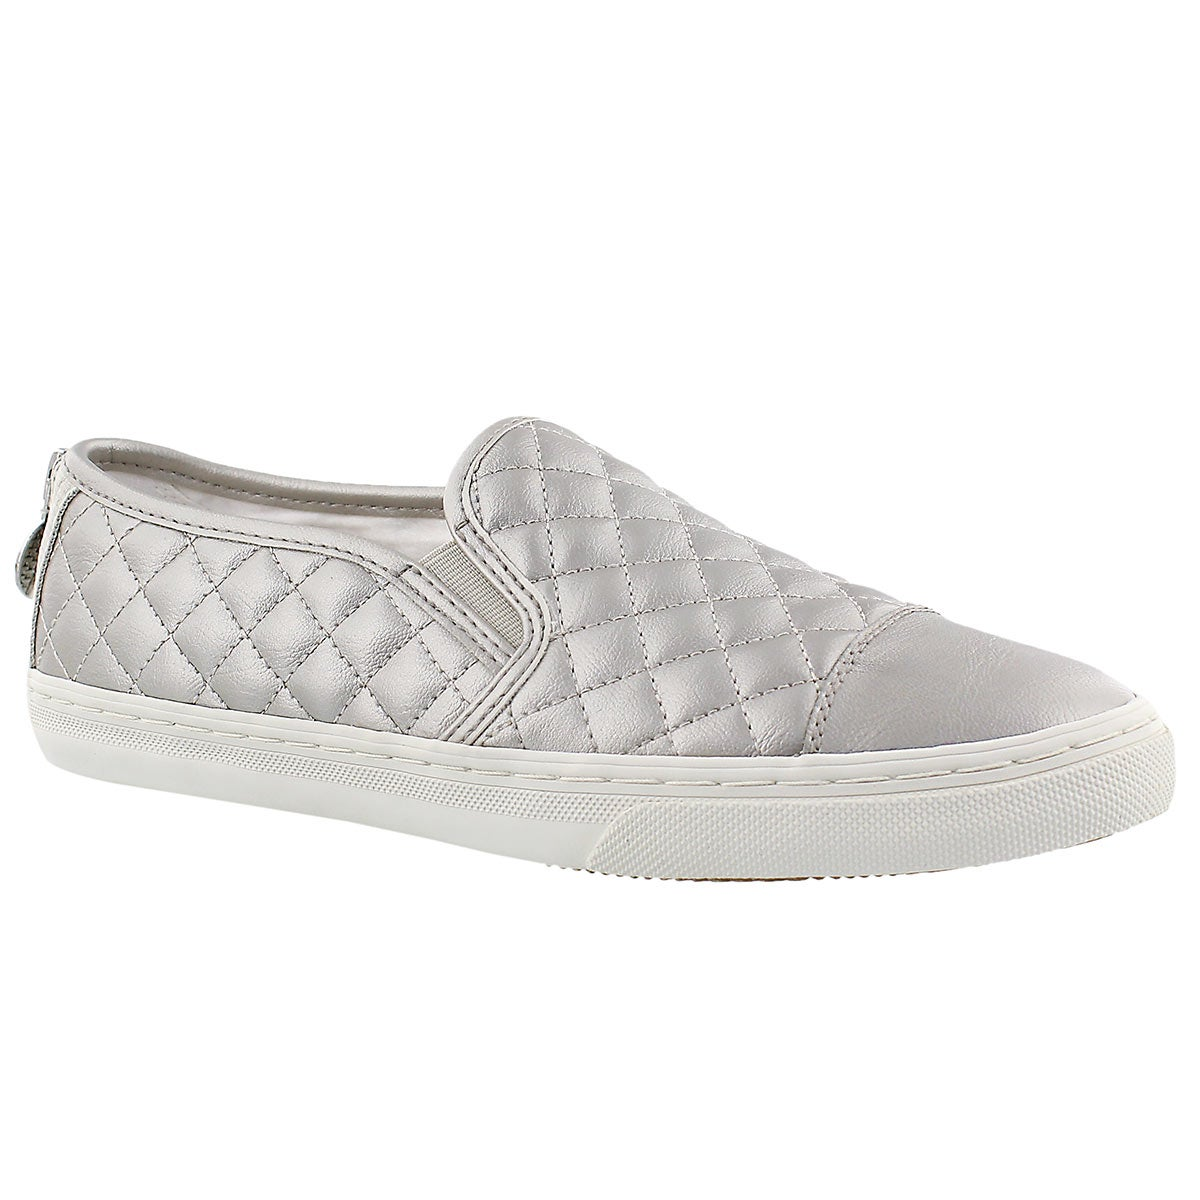 Women's NEW CLUB white/silver slip on sneakers